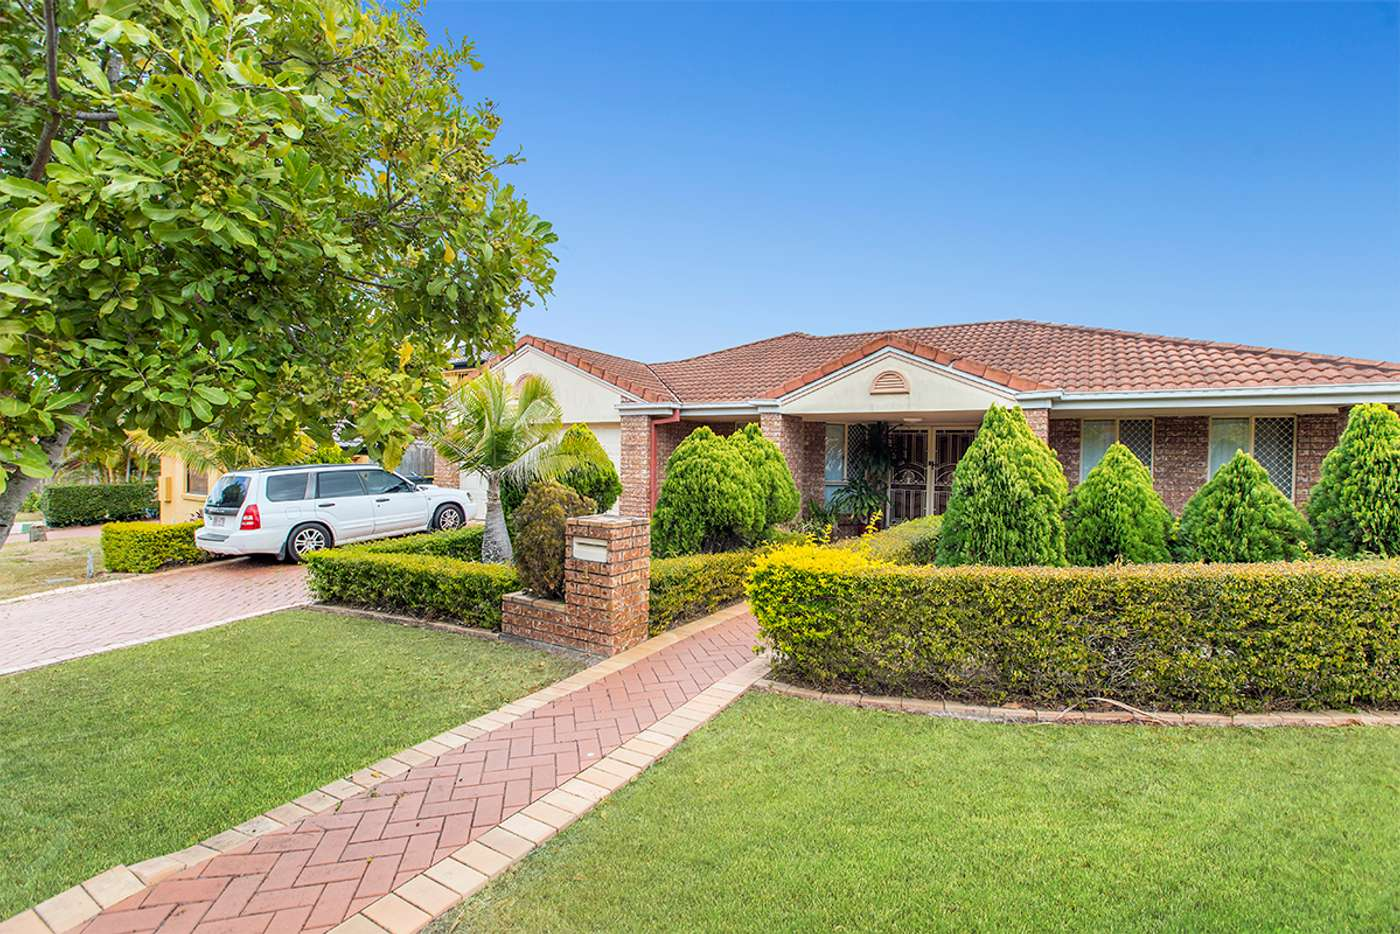 Main view of Homely house listing, 1 Alpena Close, Carindale QLD 4152